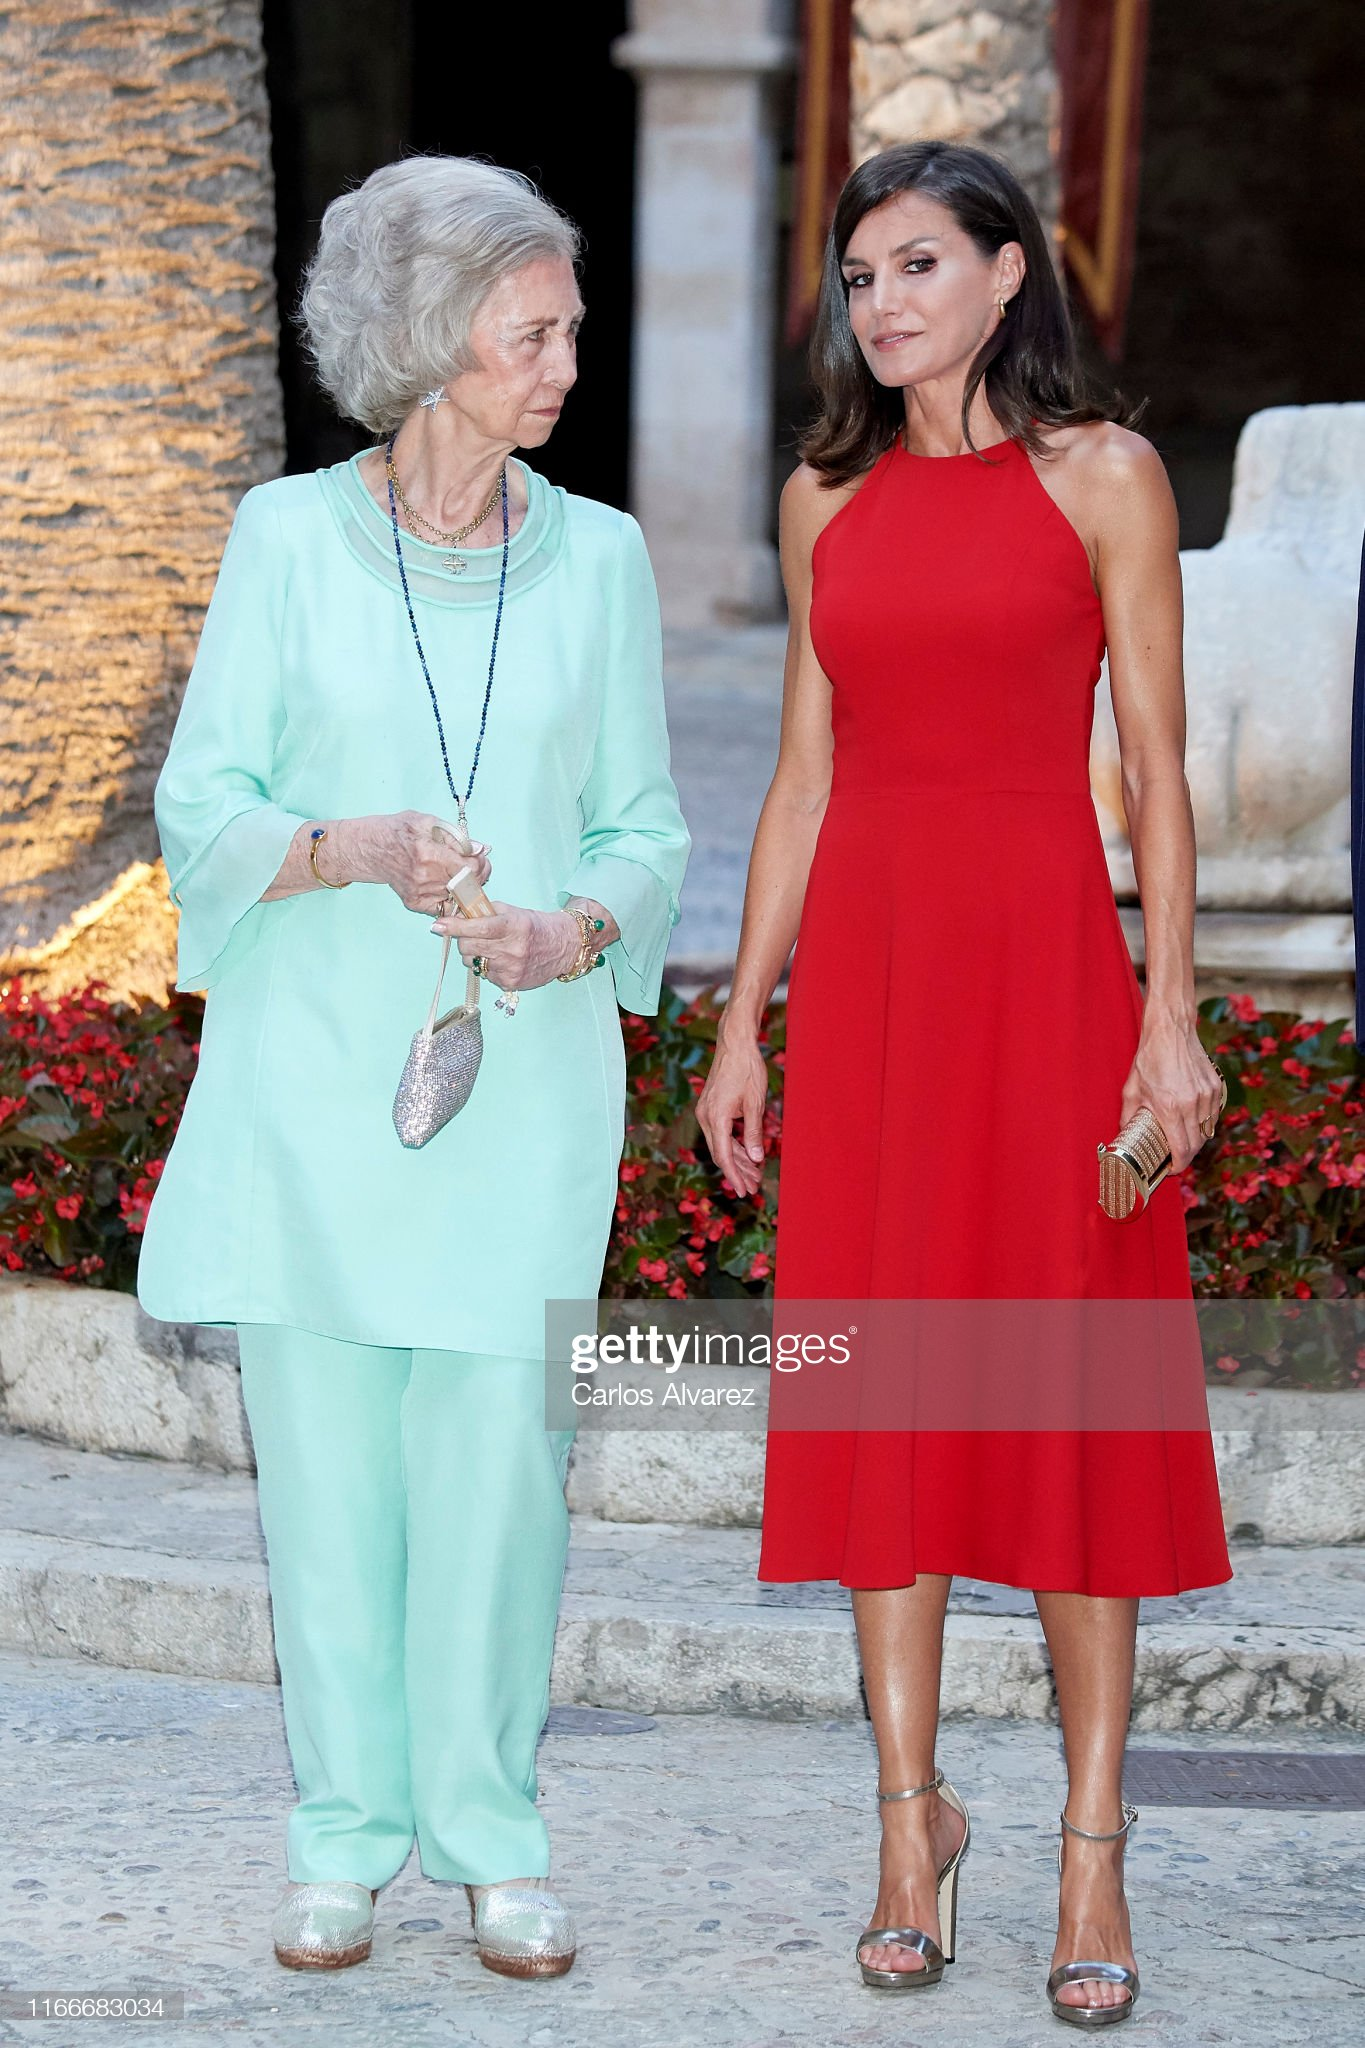 https://media.gettyimages.com/photos/queen-letizia-of-spain-and-queen-sofia-host-a-dinner-for-authorities-picture-id1166683034?s=2048x2048